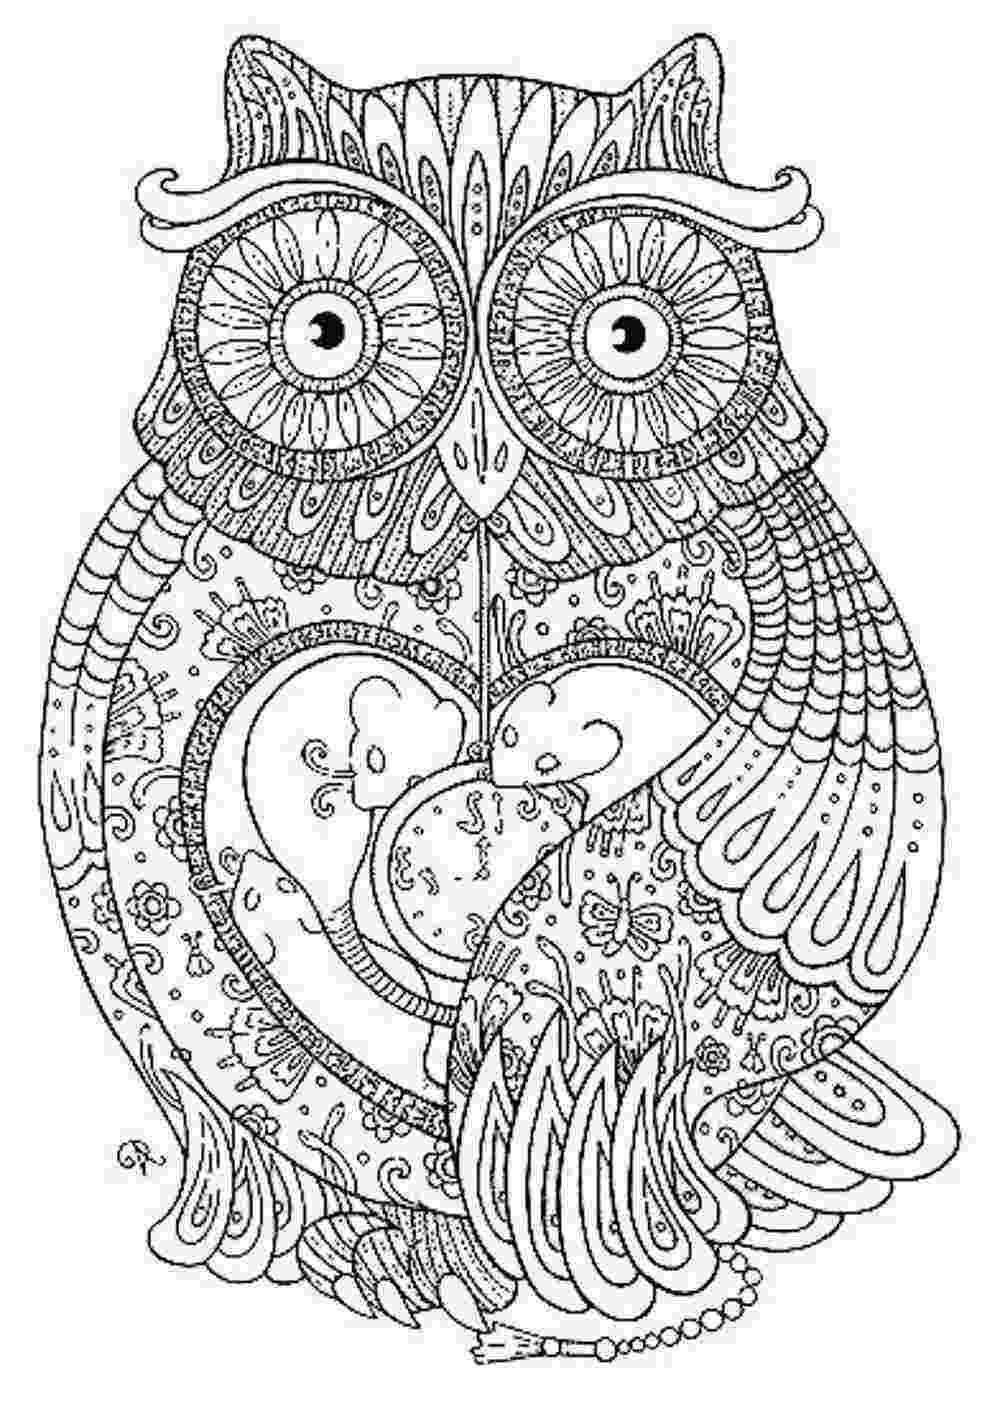 adult mandala coloring pages animal mandala coloring pages to download and print for free pages mandala coloring adult